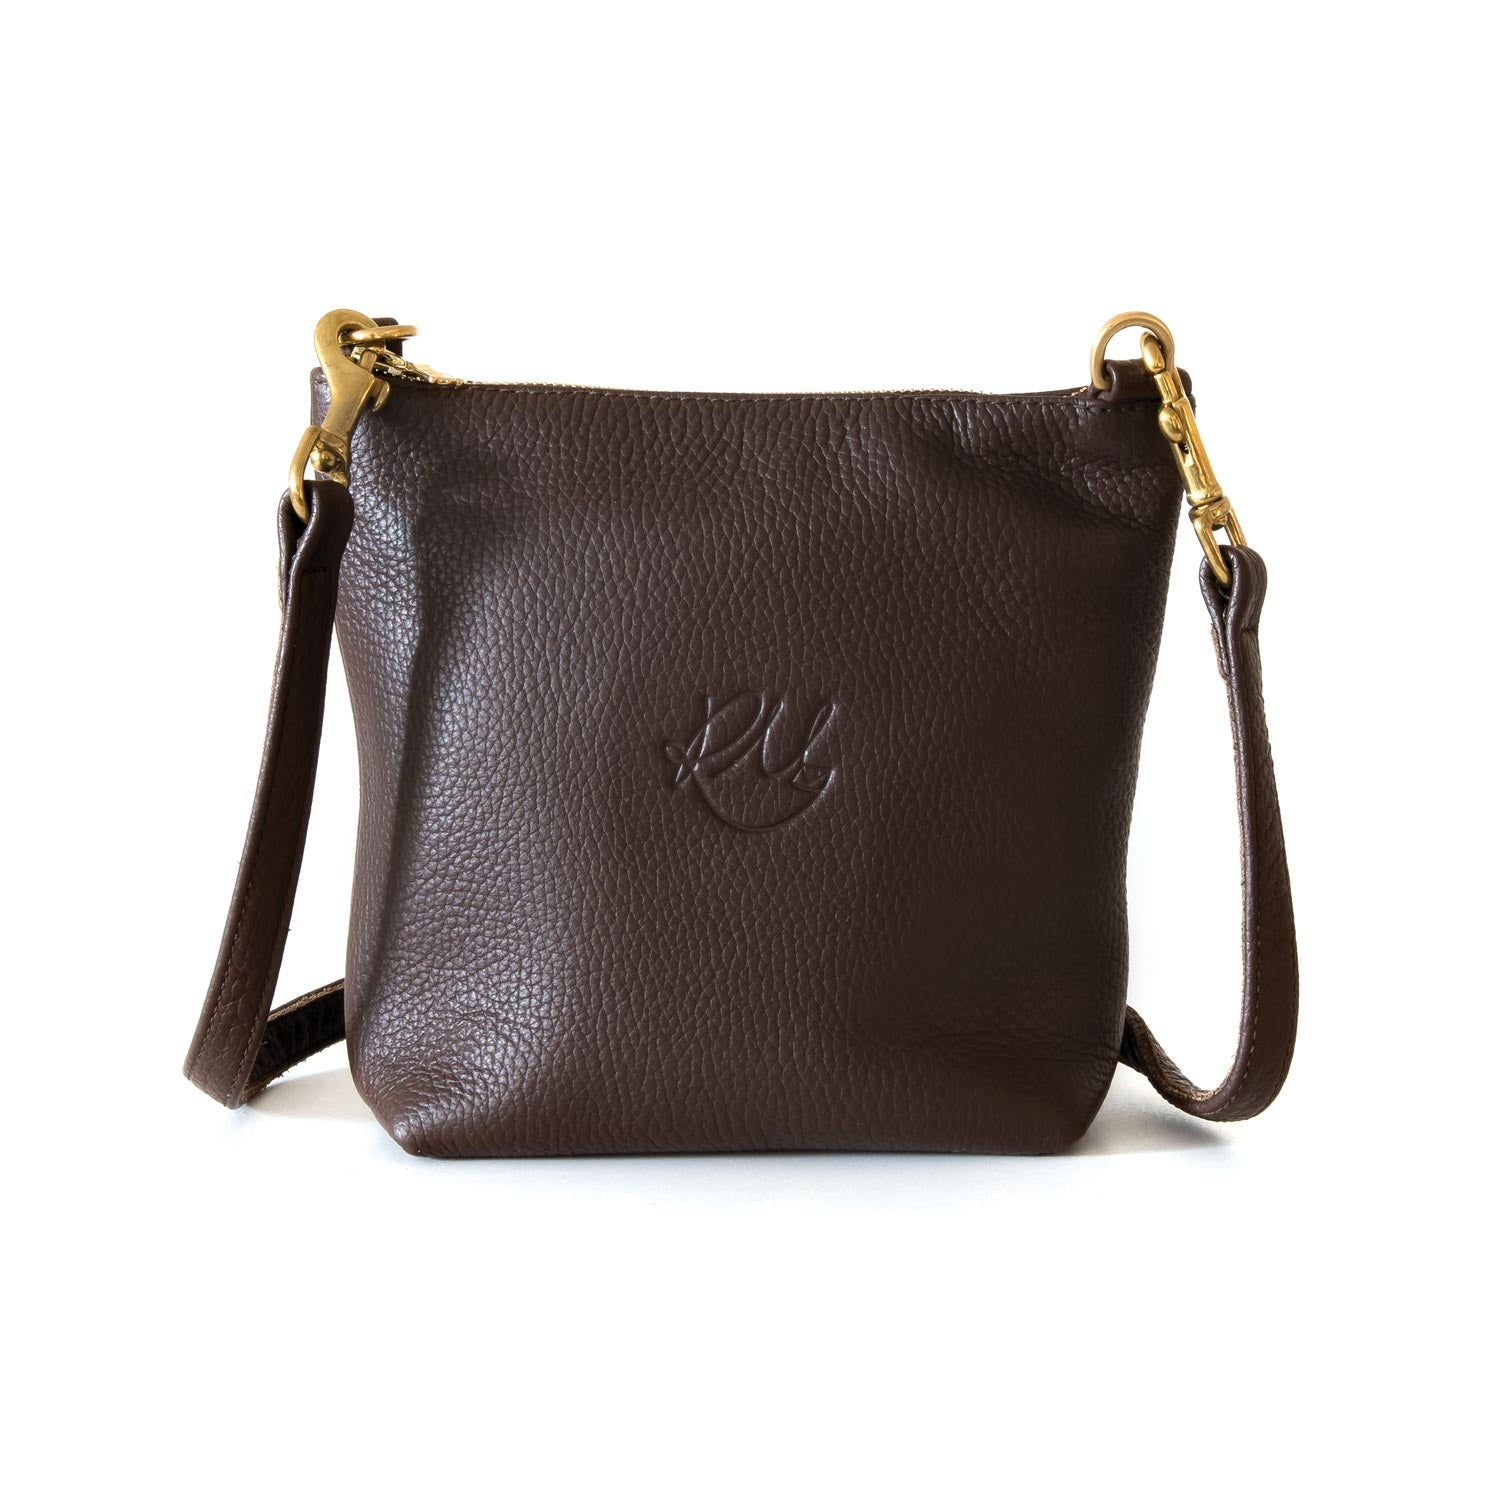 Daisy Cross Body Bag - Chocolate brown